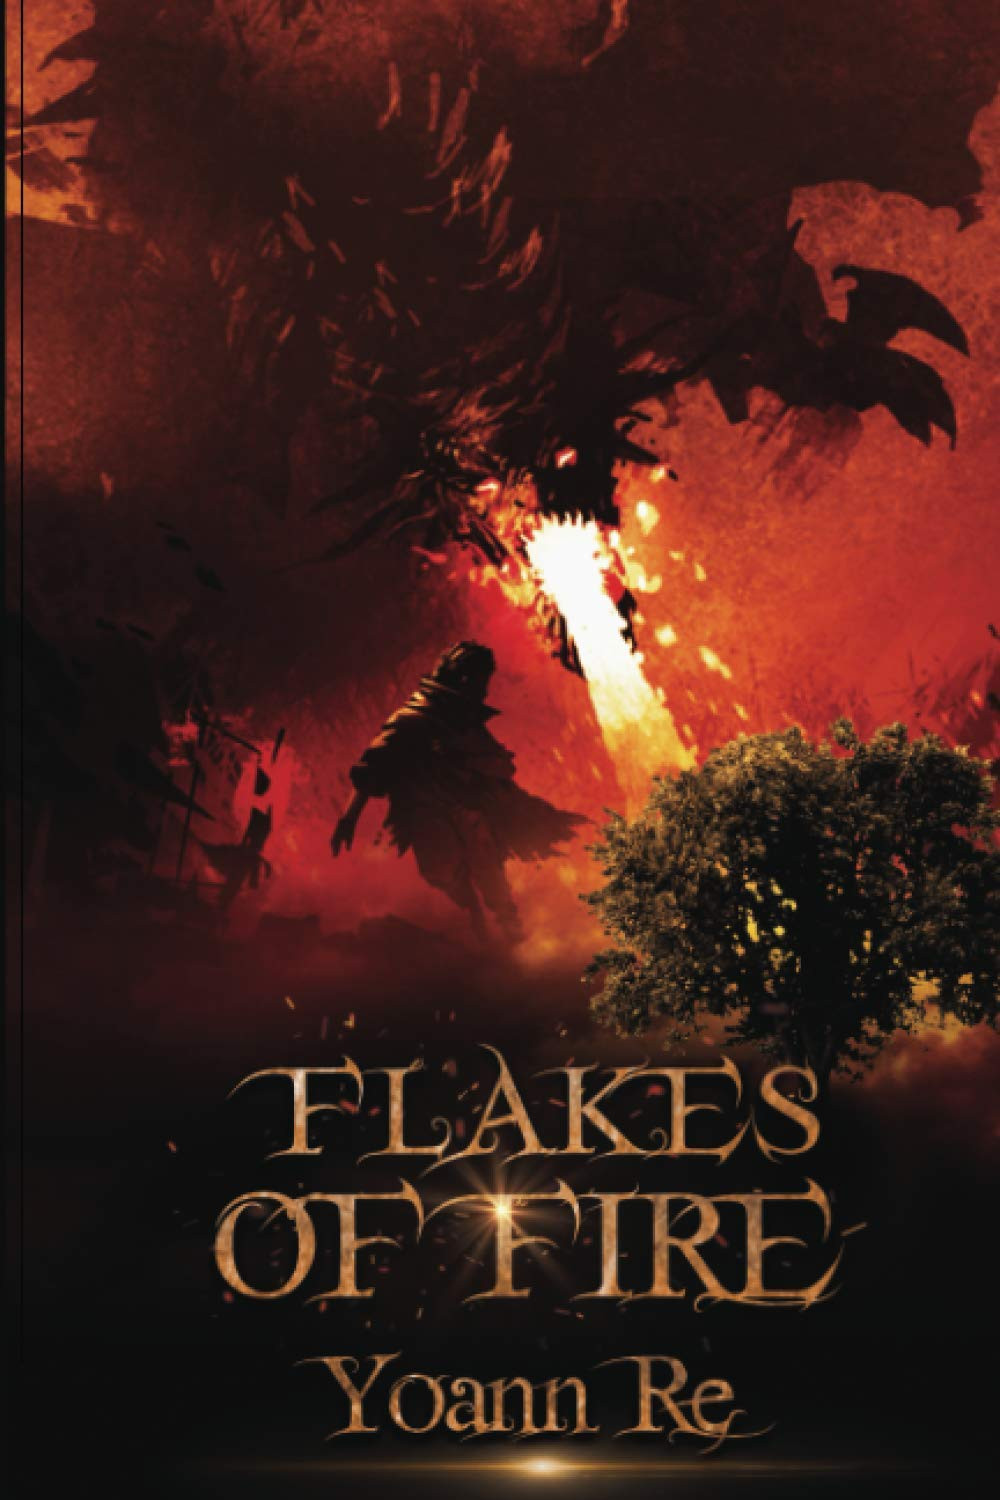 Book Review - Flakes of Fire by Yoanna Re